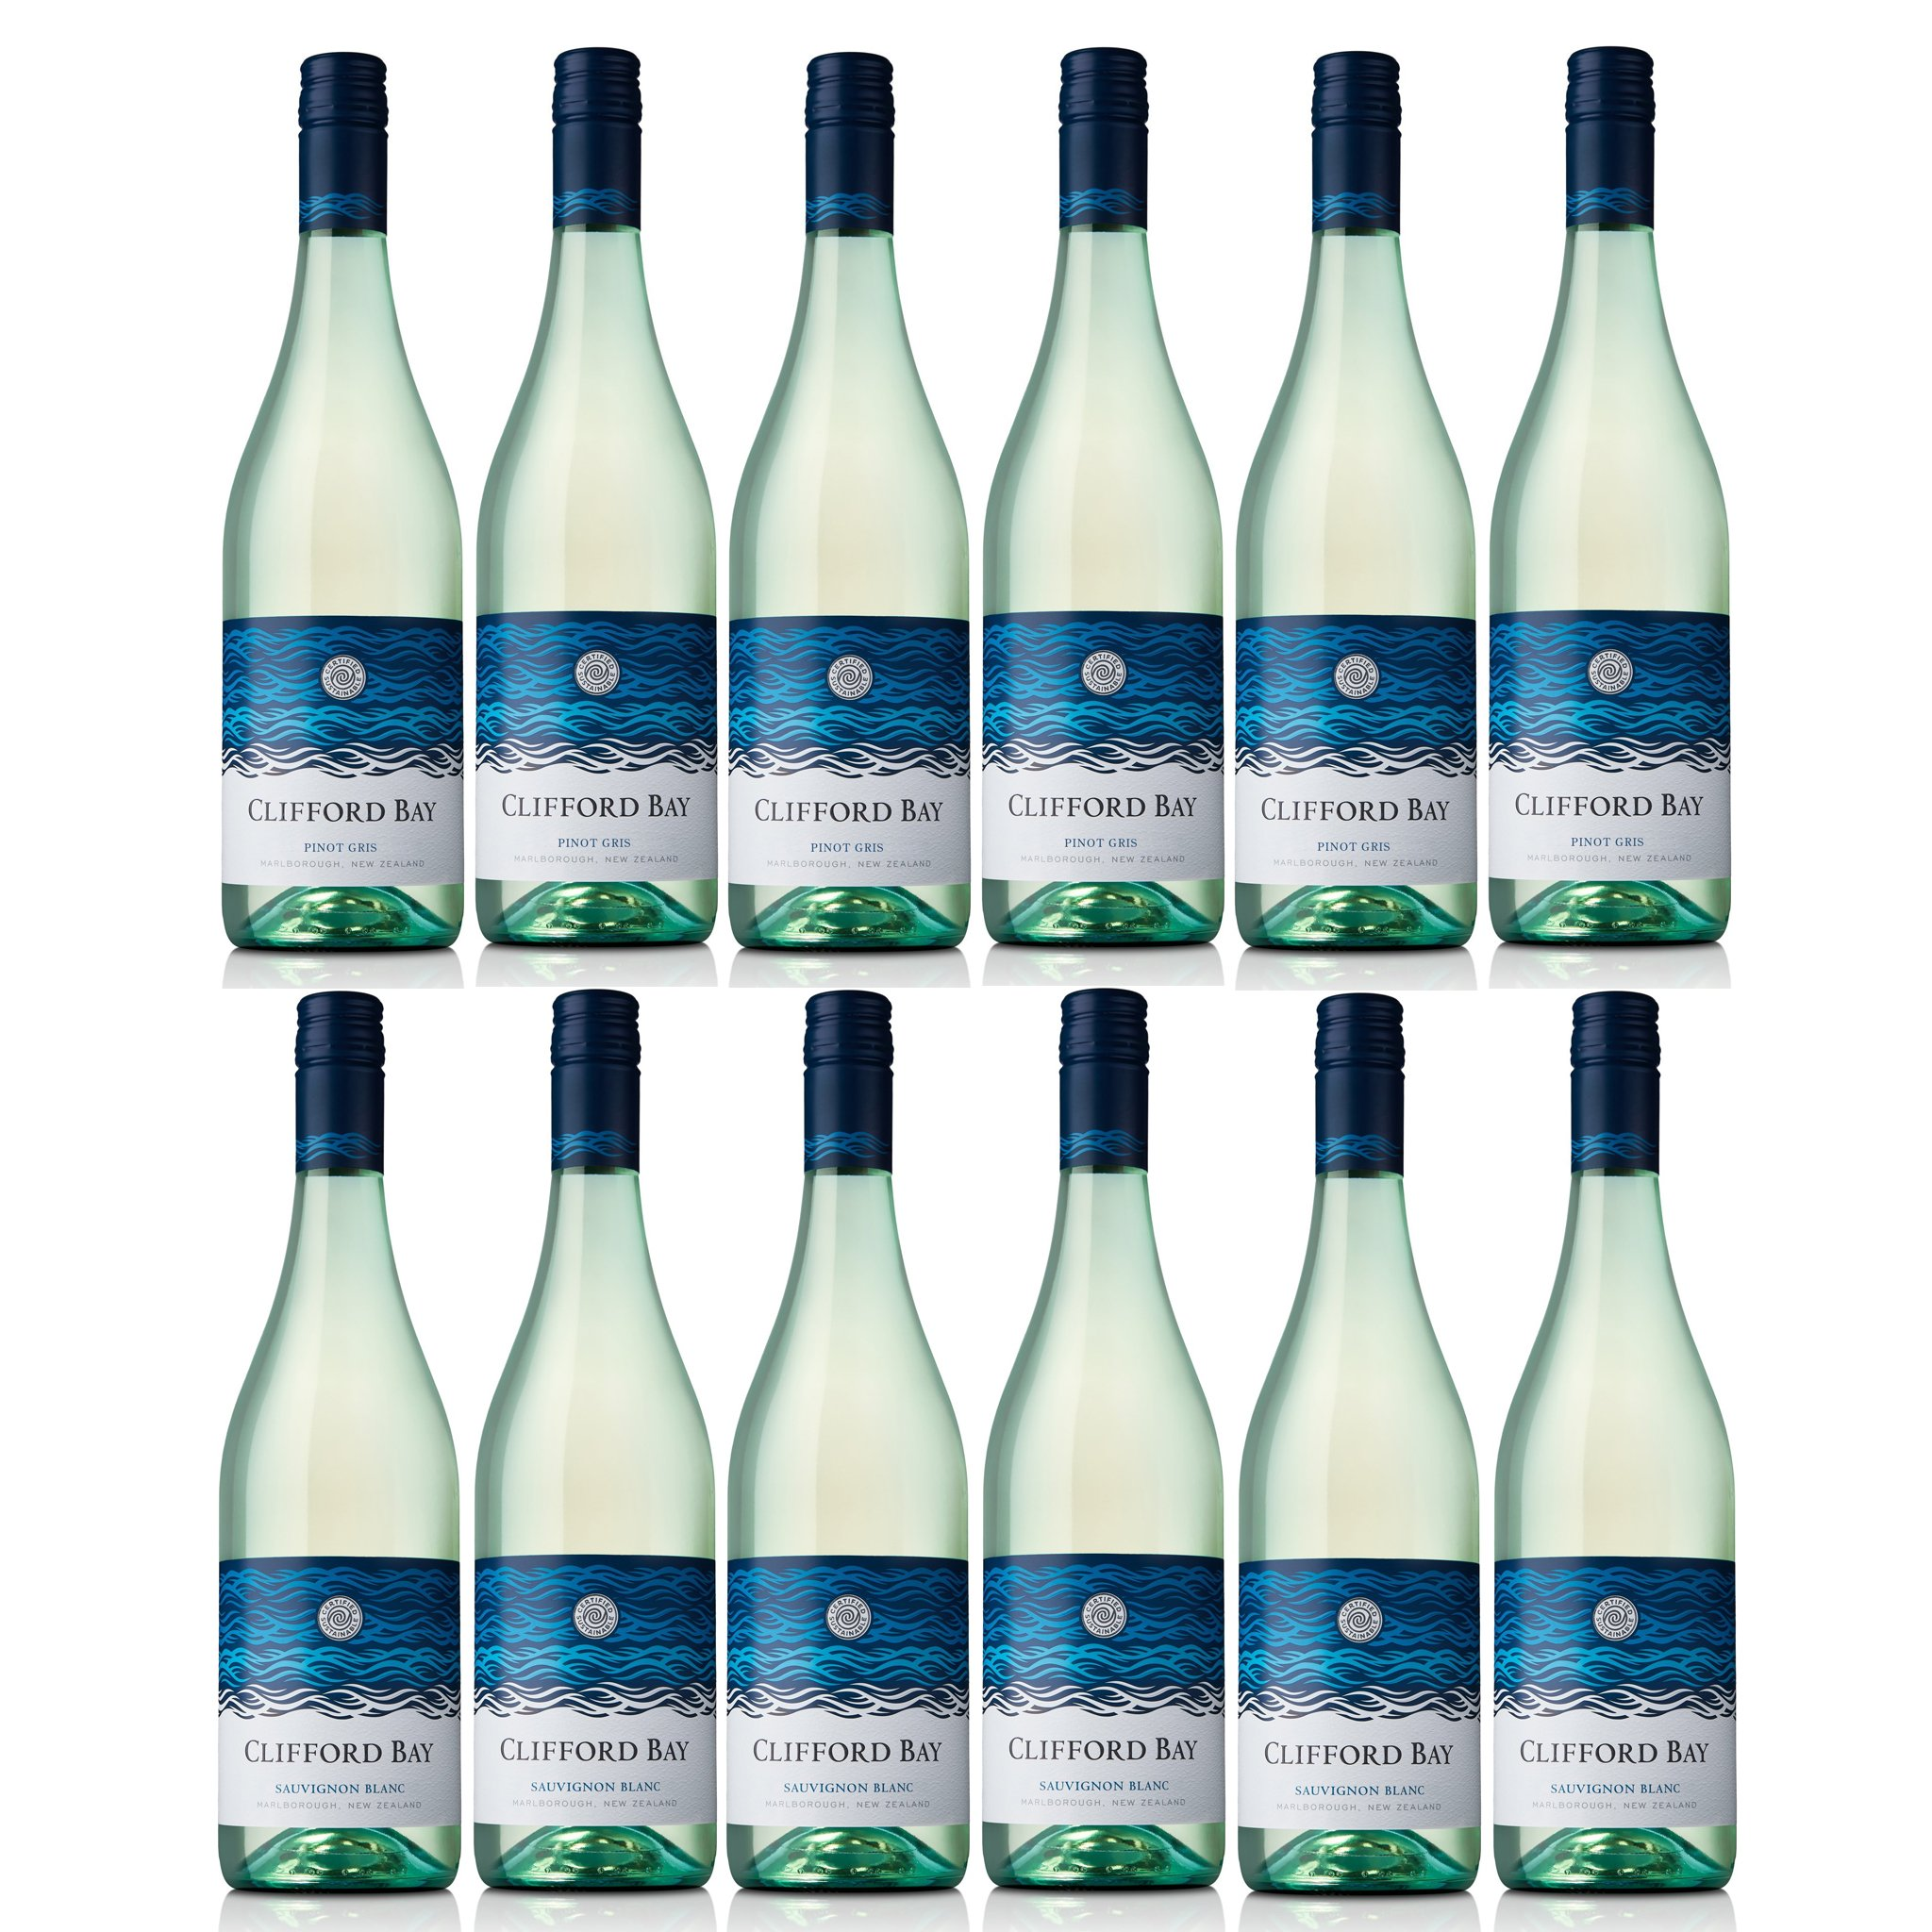 Clifford Bay Sauvignon Blanc and Pinot Gris Pack (12 bottles in total)